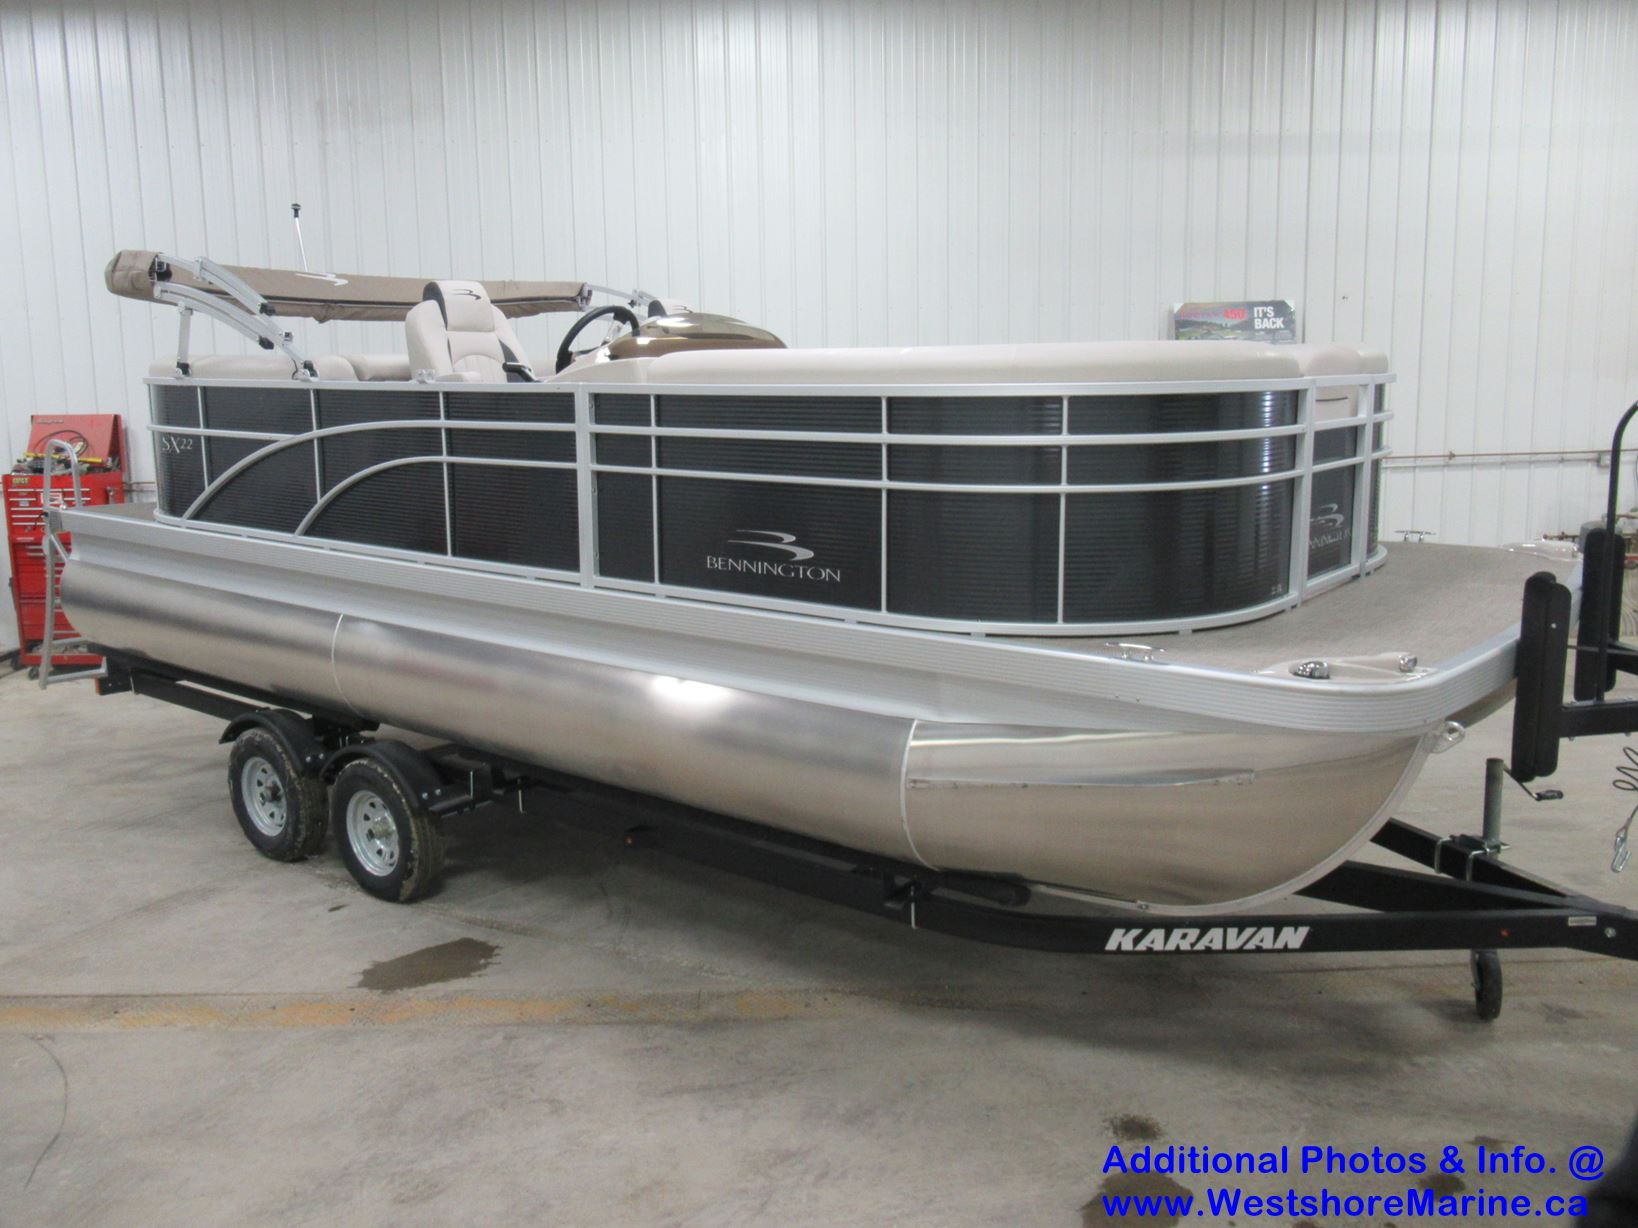 New 2019 BENNINGTON 22 S STERN RADIUS - Free VIP Package Included!